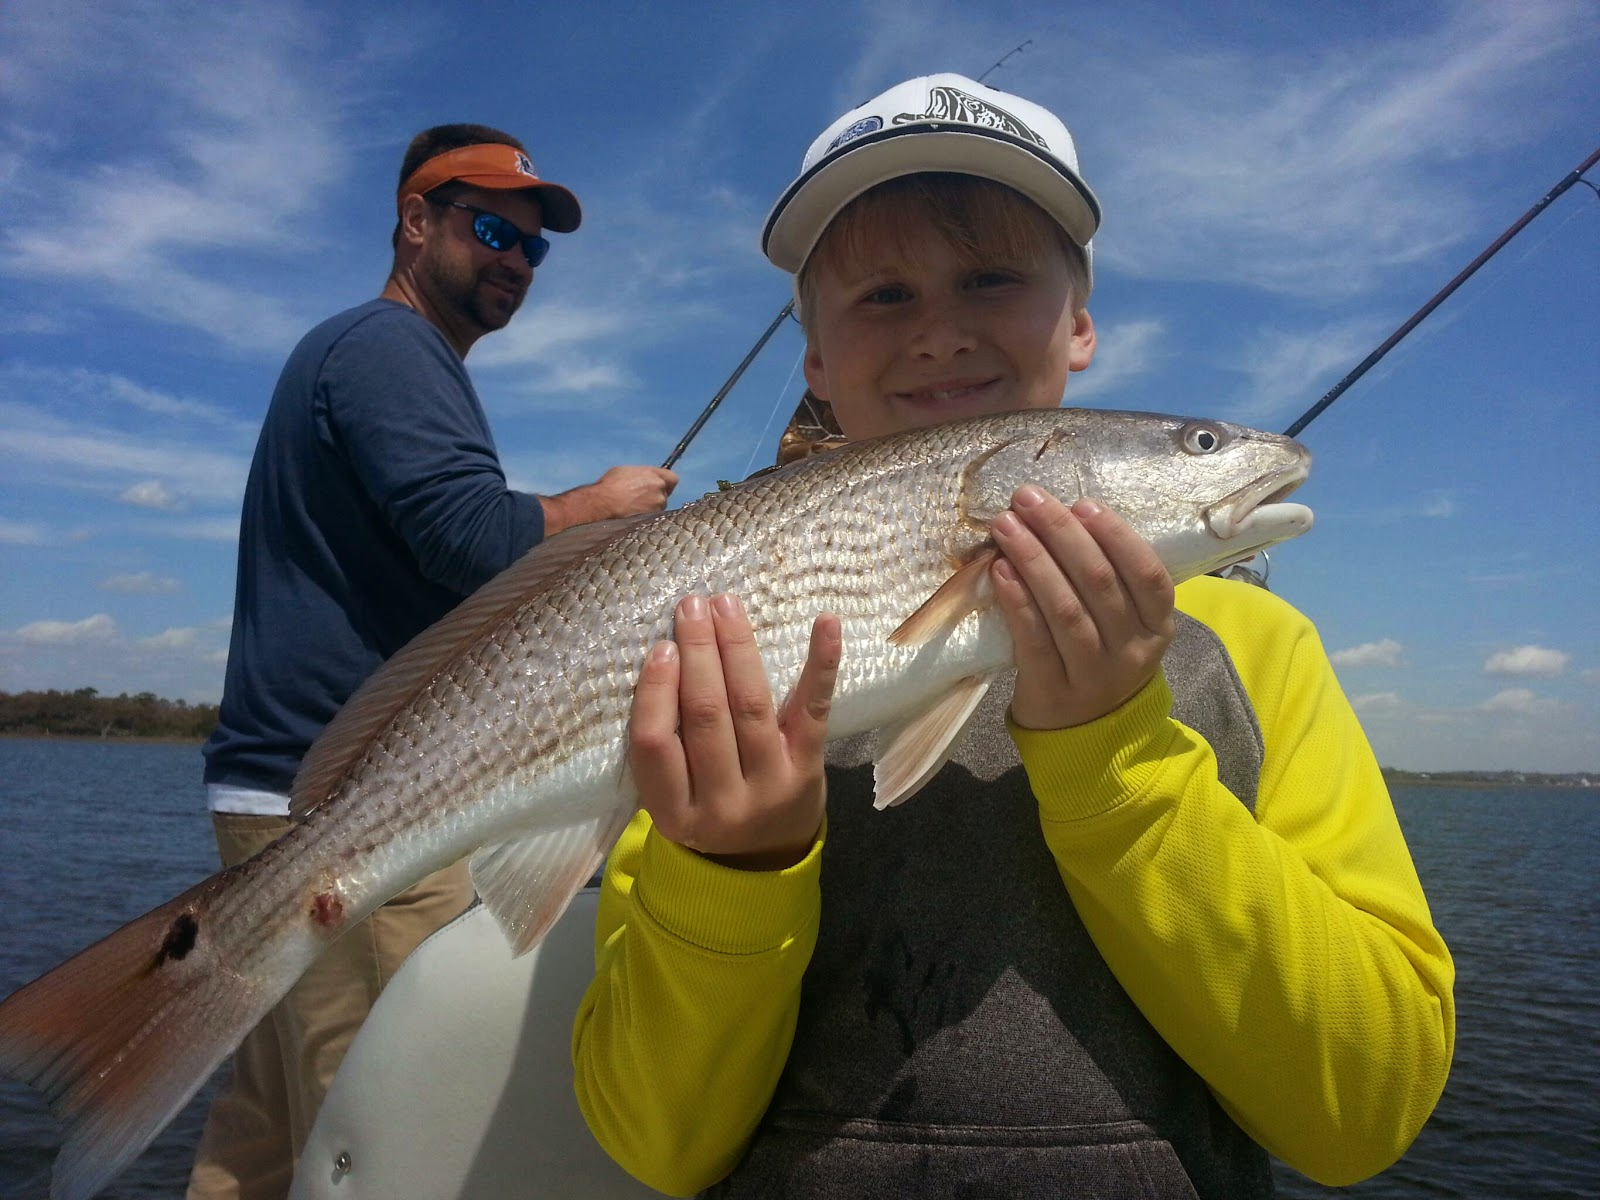 April sightfishing is hot swansboro fishing report capt for Fishing report swansboro nc